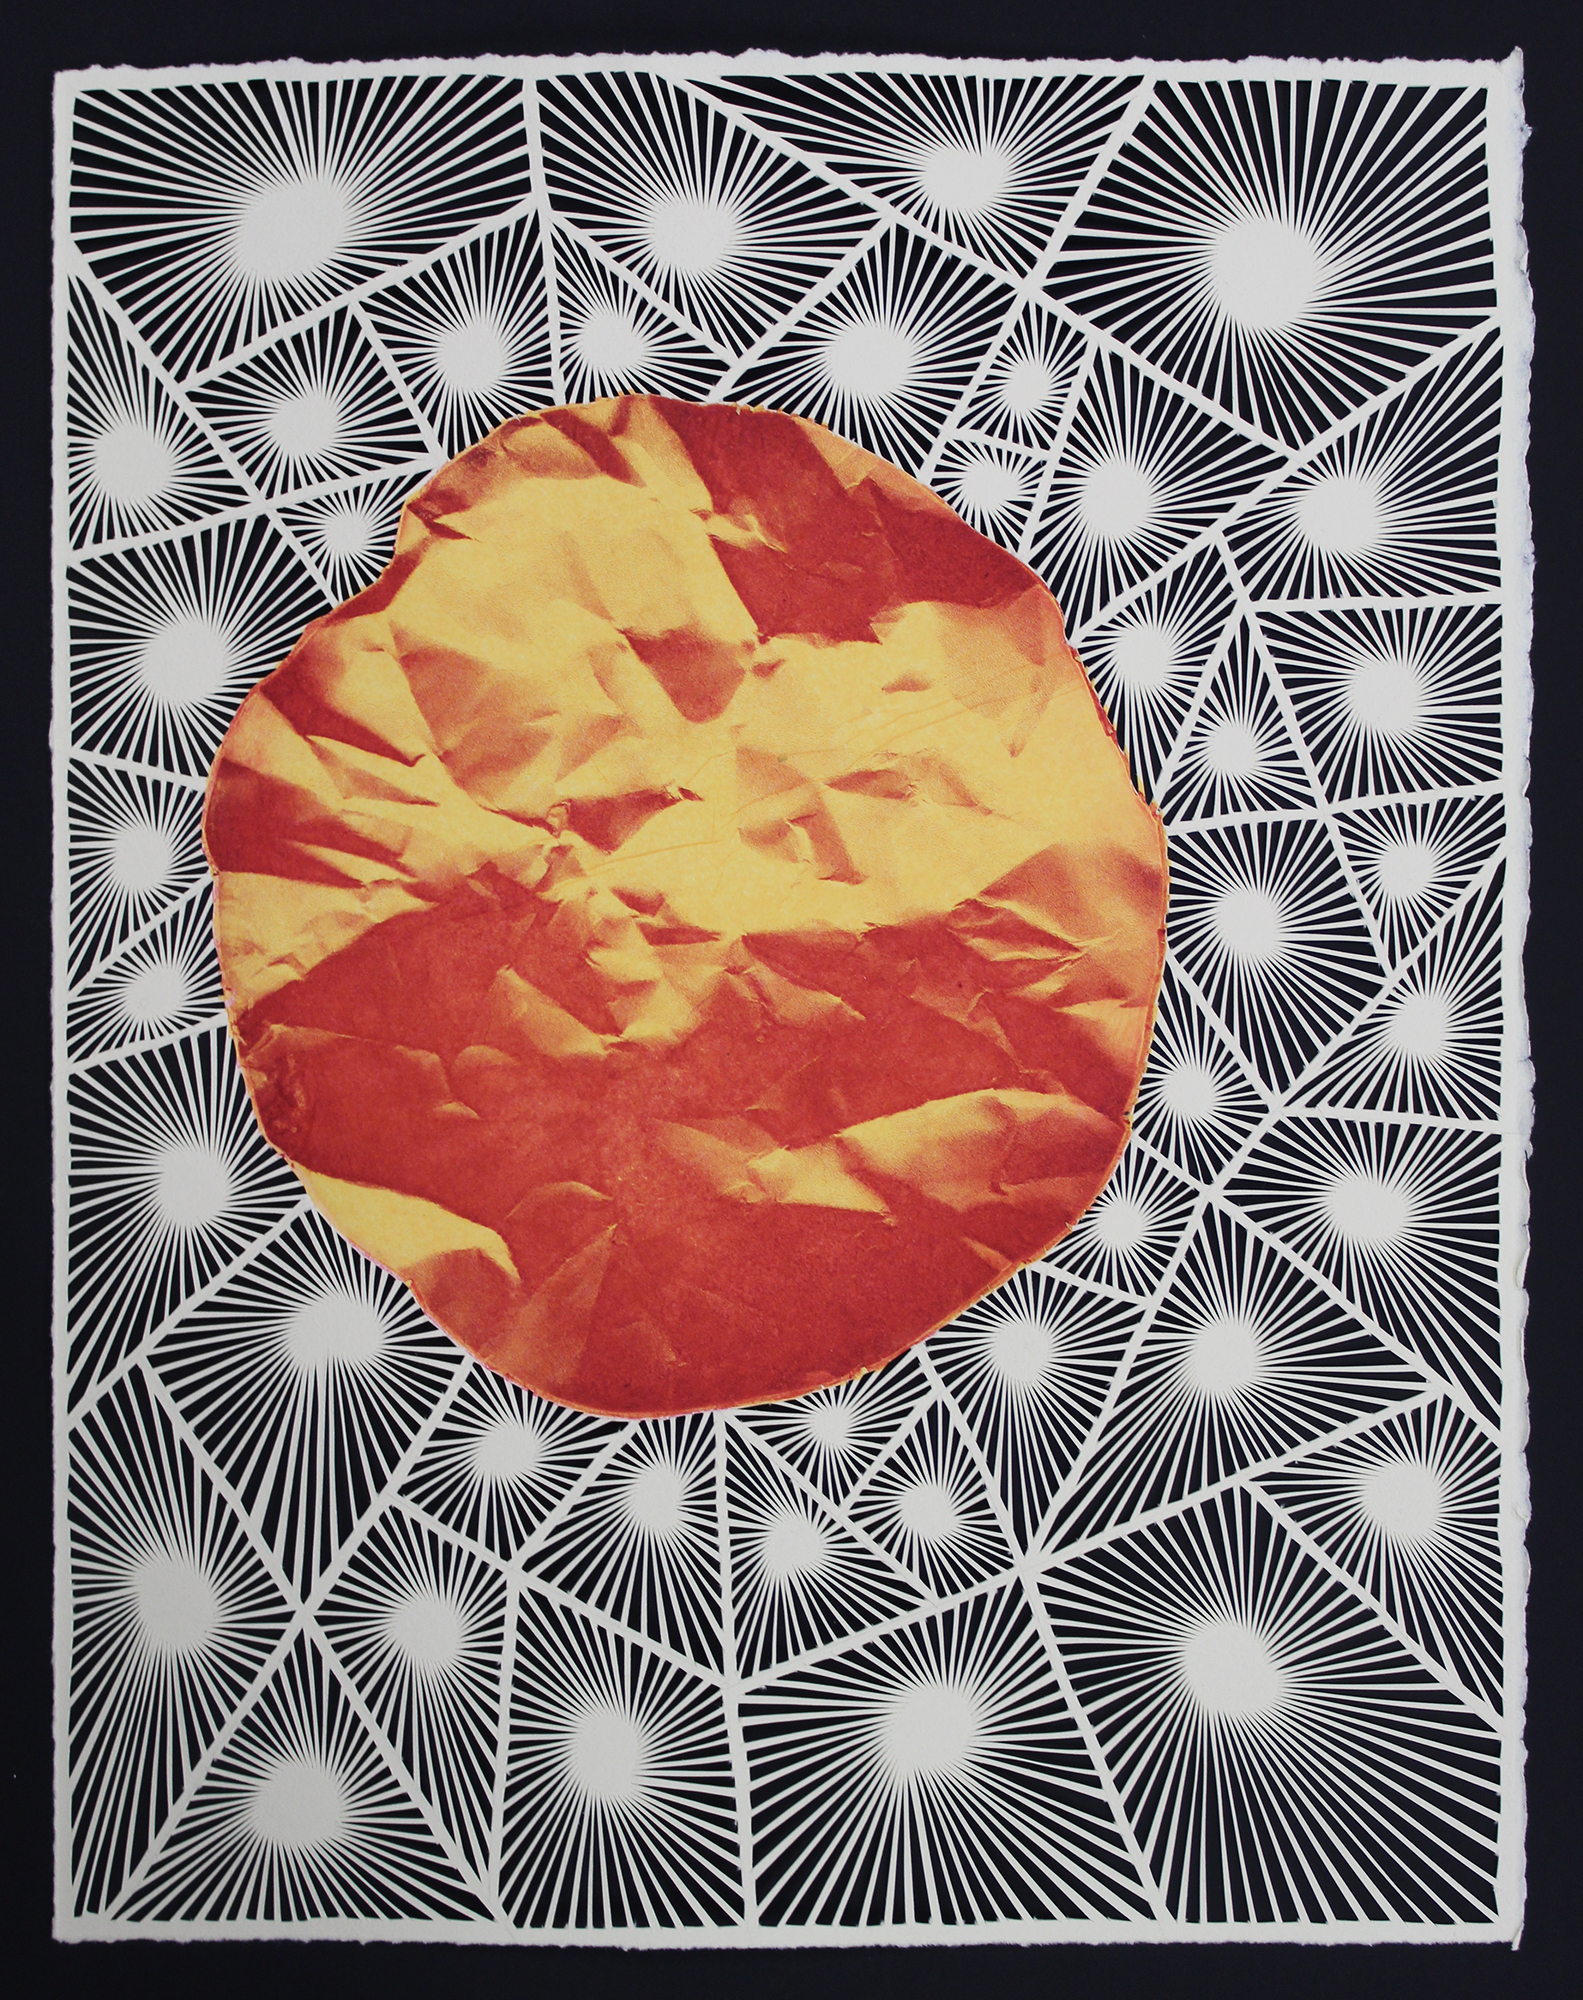 "Red Giant  Laser intaglio etching w/ Chine Collé on white hand-cut paper  12"" x 15""  2019"